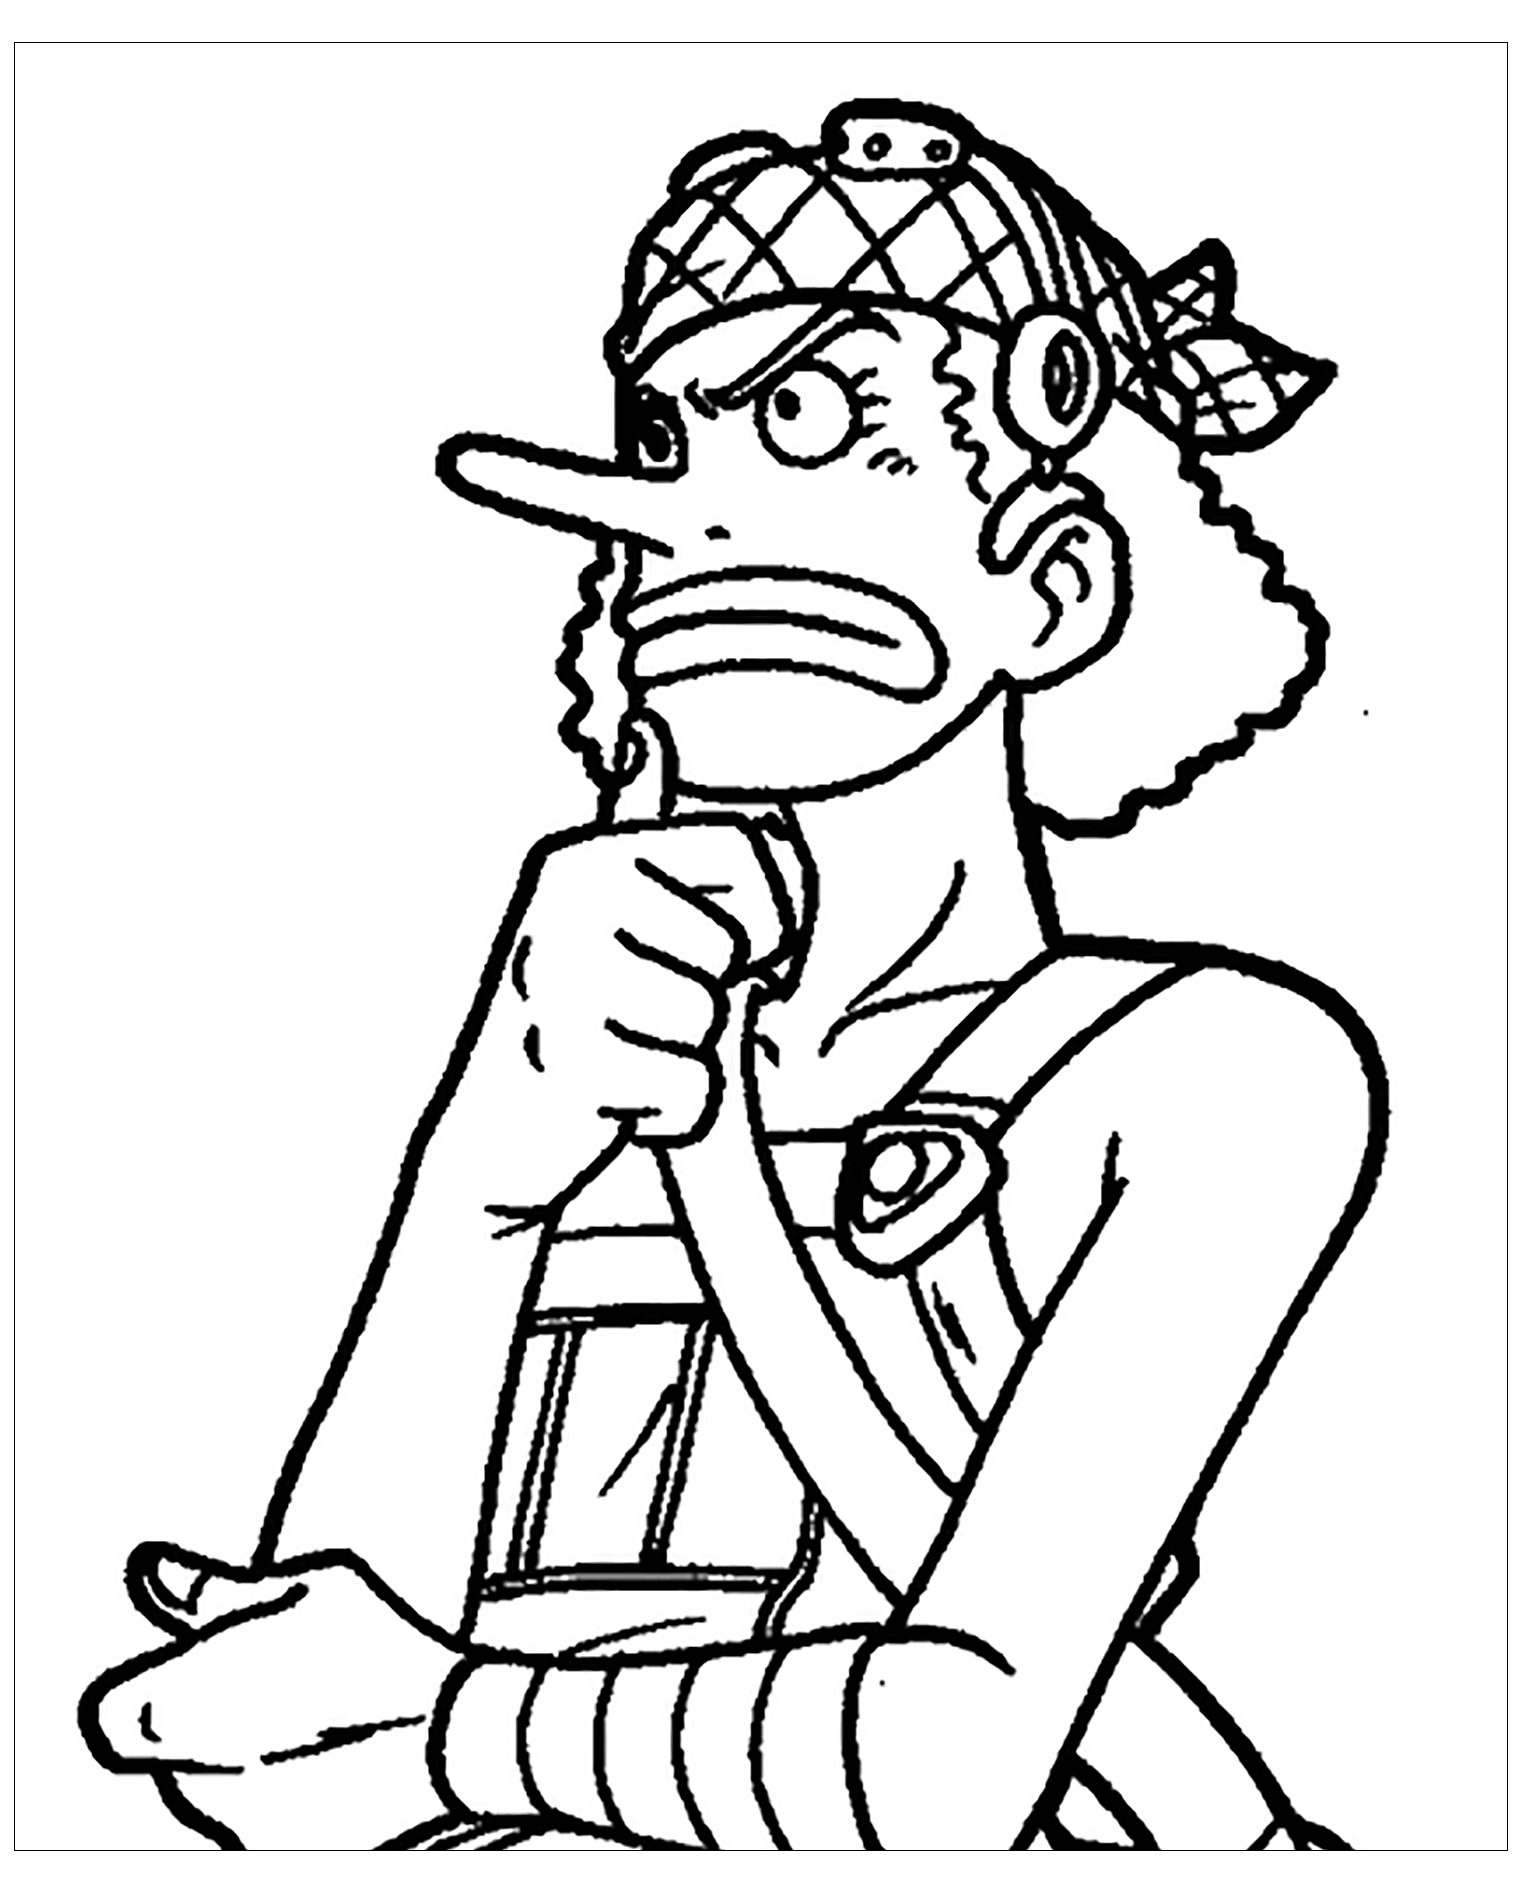 One Piece coloring page to download